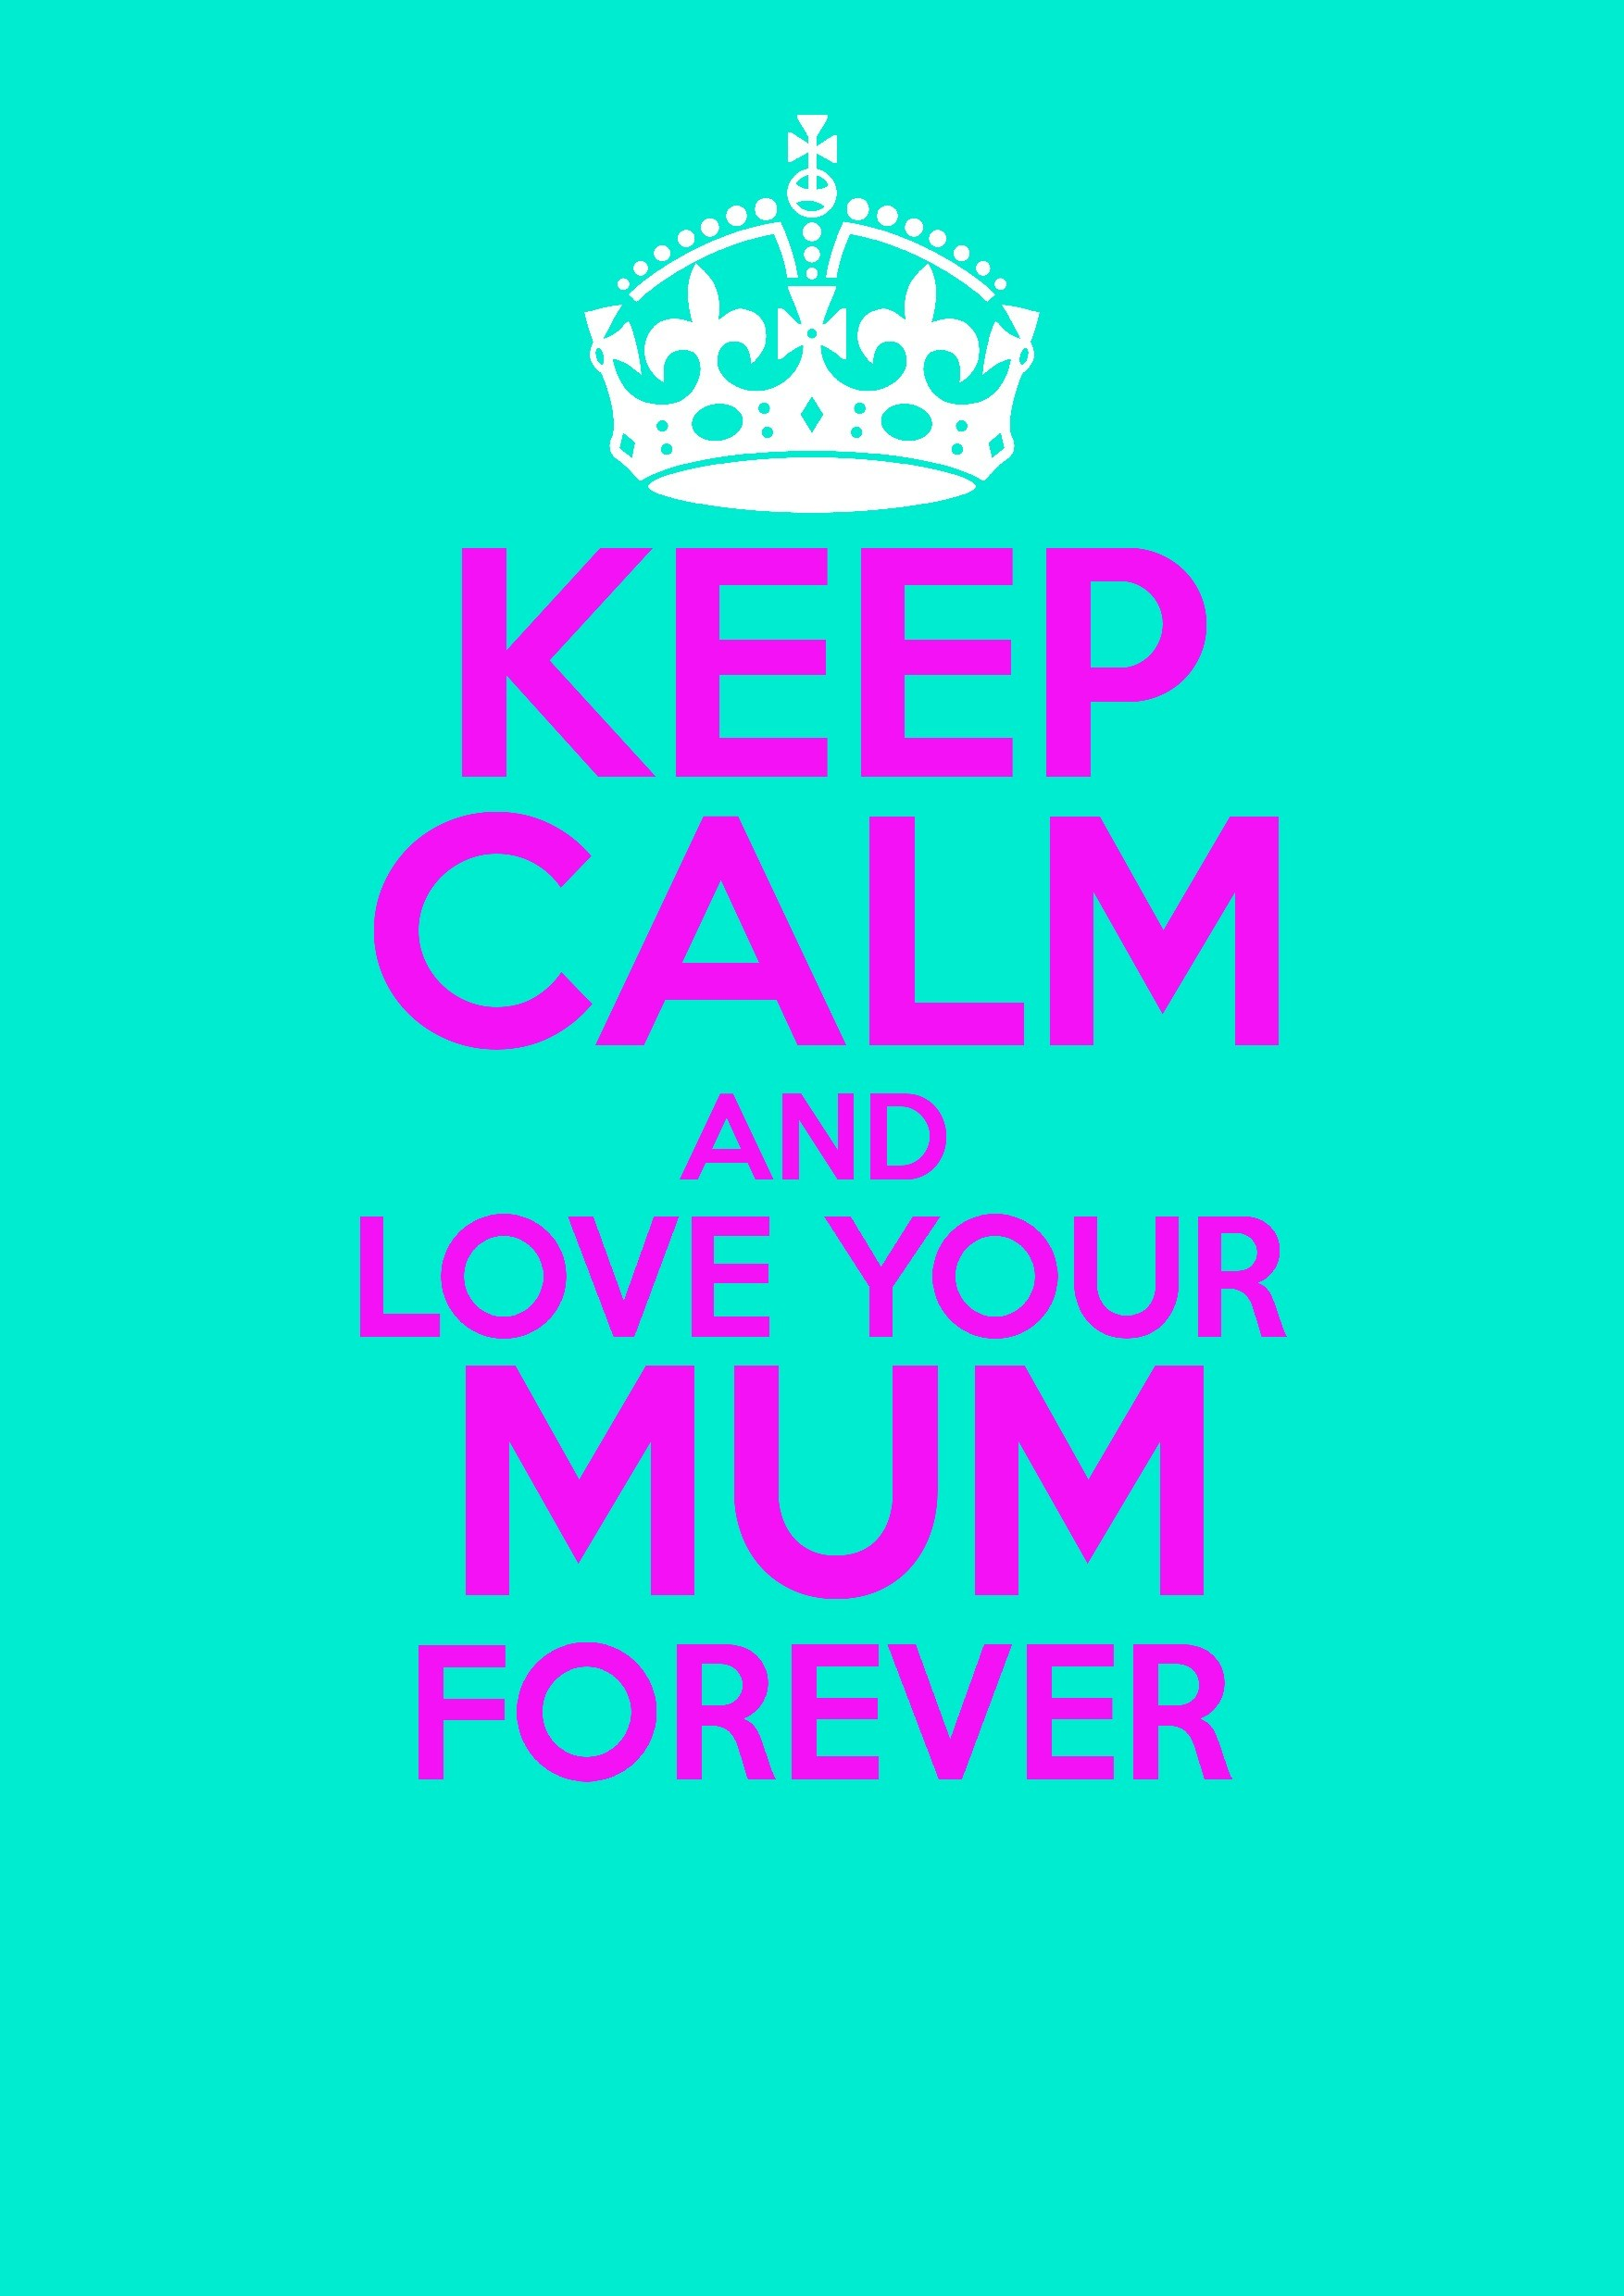 keep calm and love your mum forever! i call my mum mum!